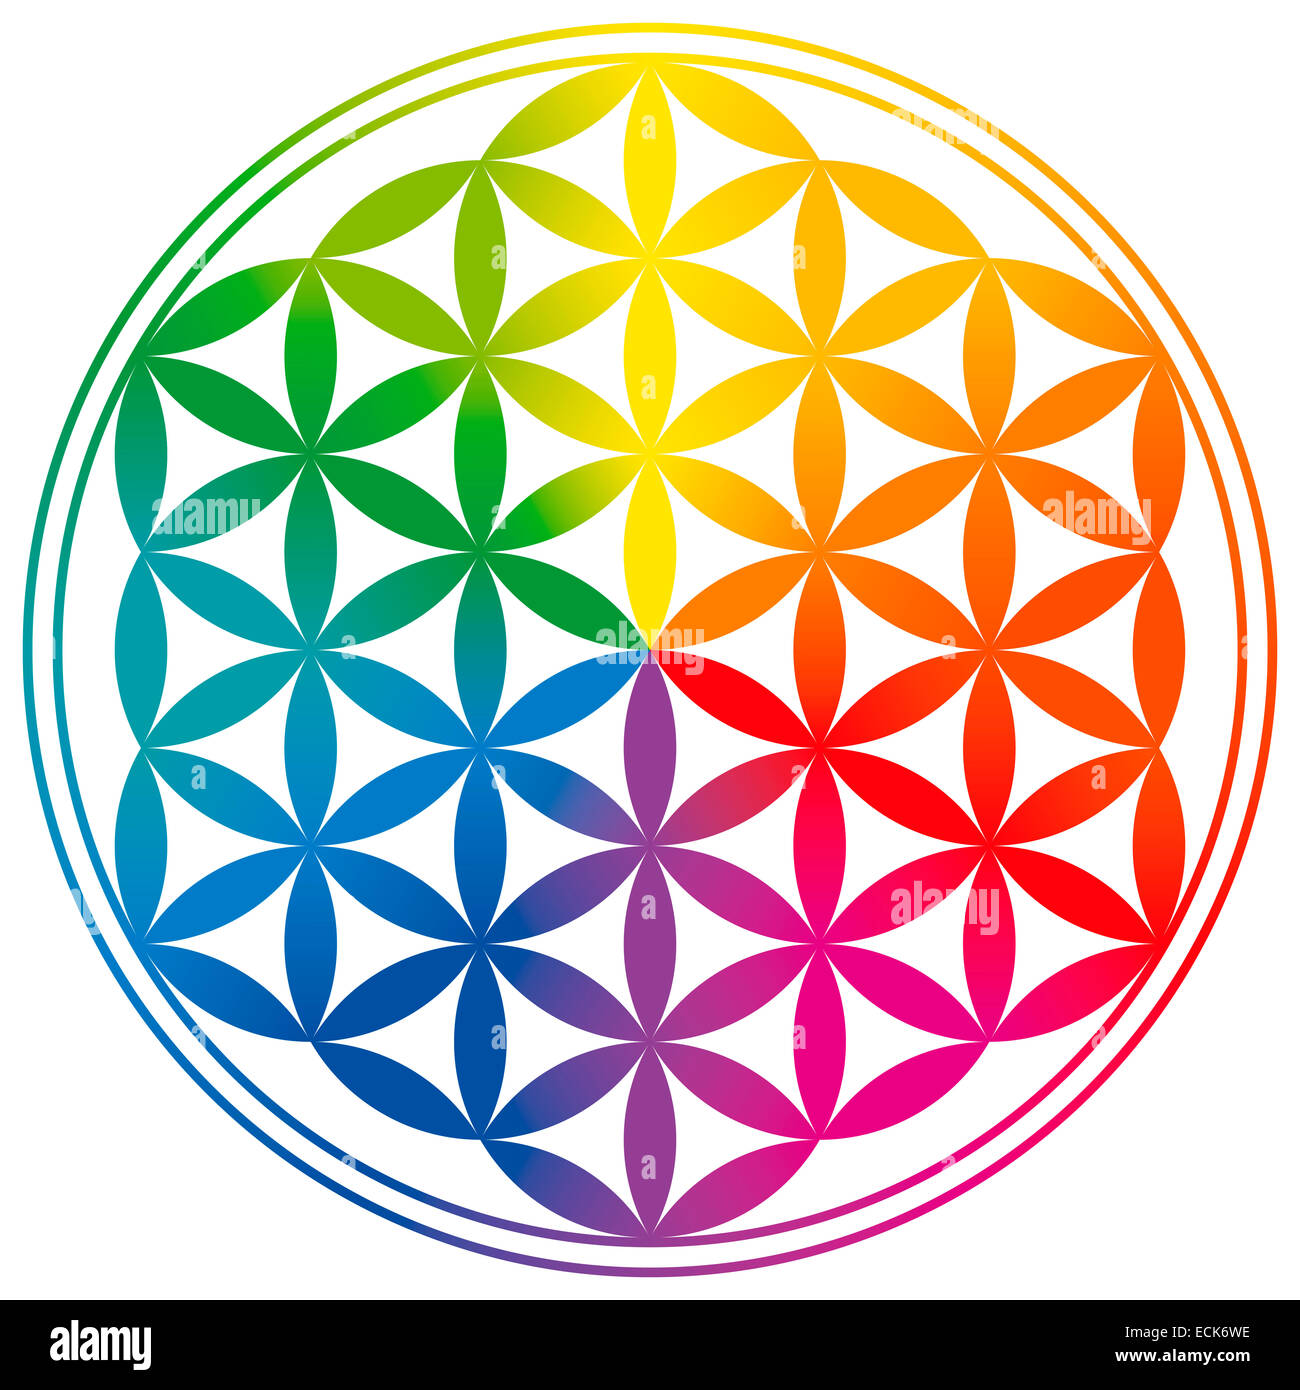 symbolism of life It is believed that there is a secret symbol embedded within the flower of life this symbol is said to hold the most important and most sacred patterns of the universe and is the harbinger of all life and existence—from molecules and atoms to planets and galaxies.